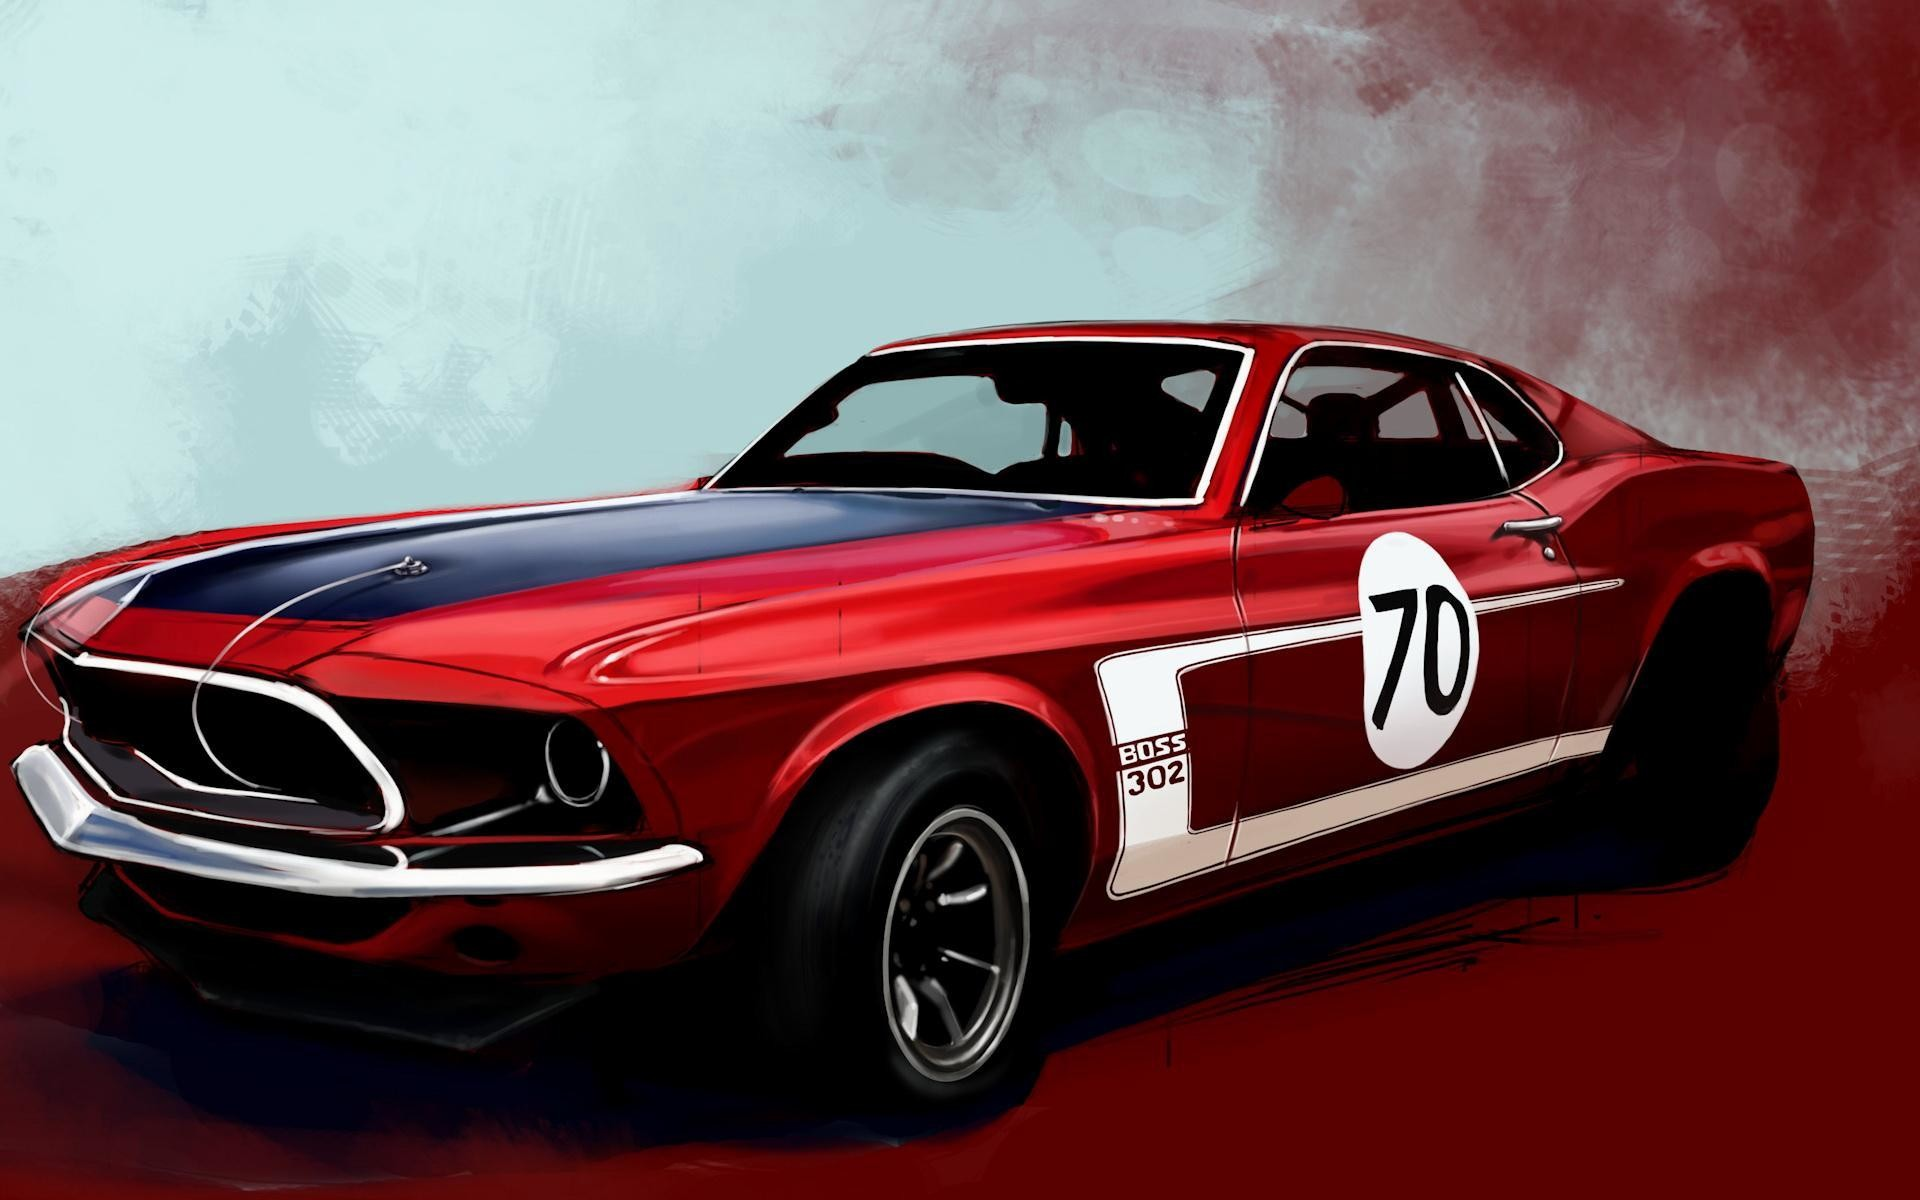 Muscle-Car-Image-Free-Download